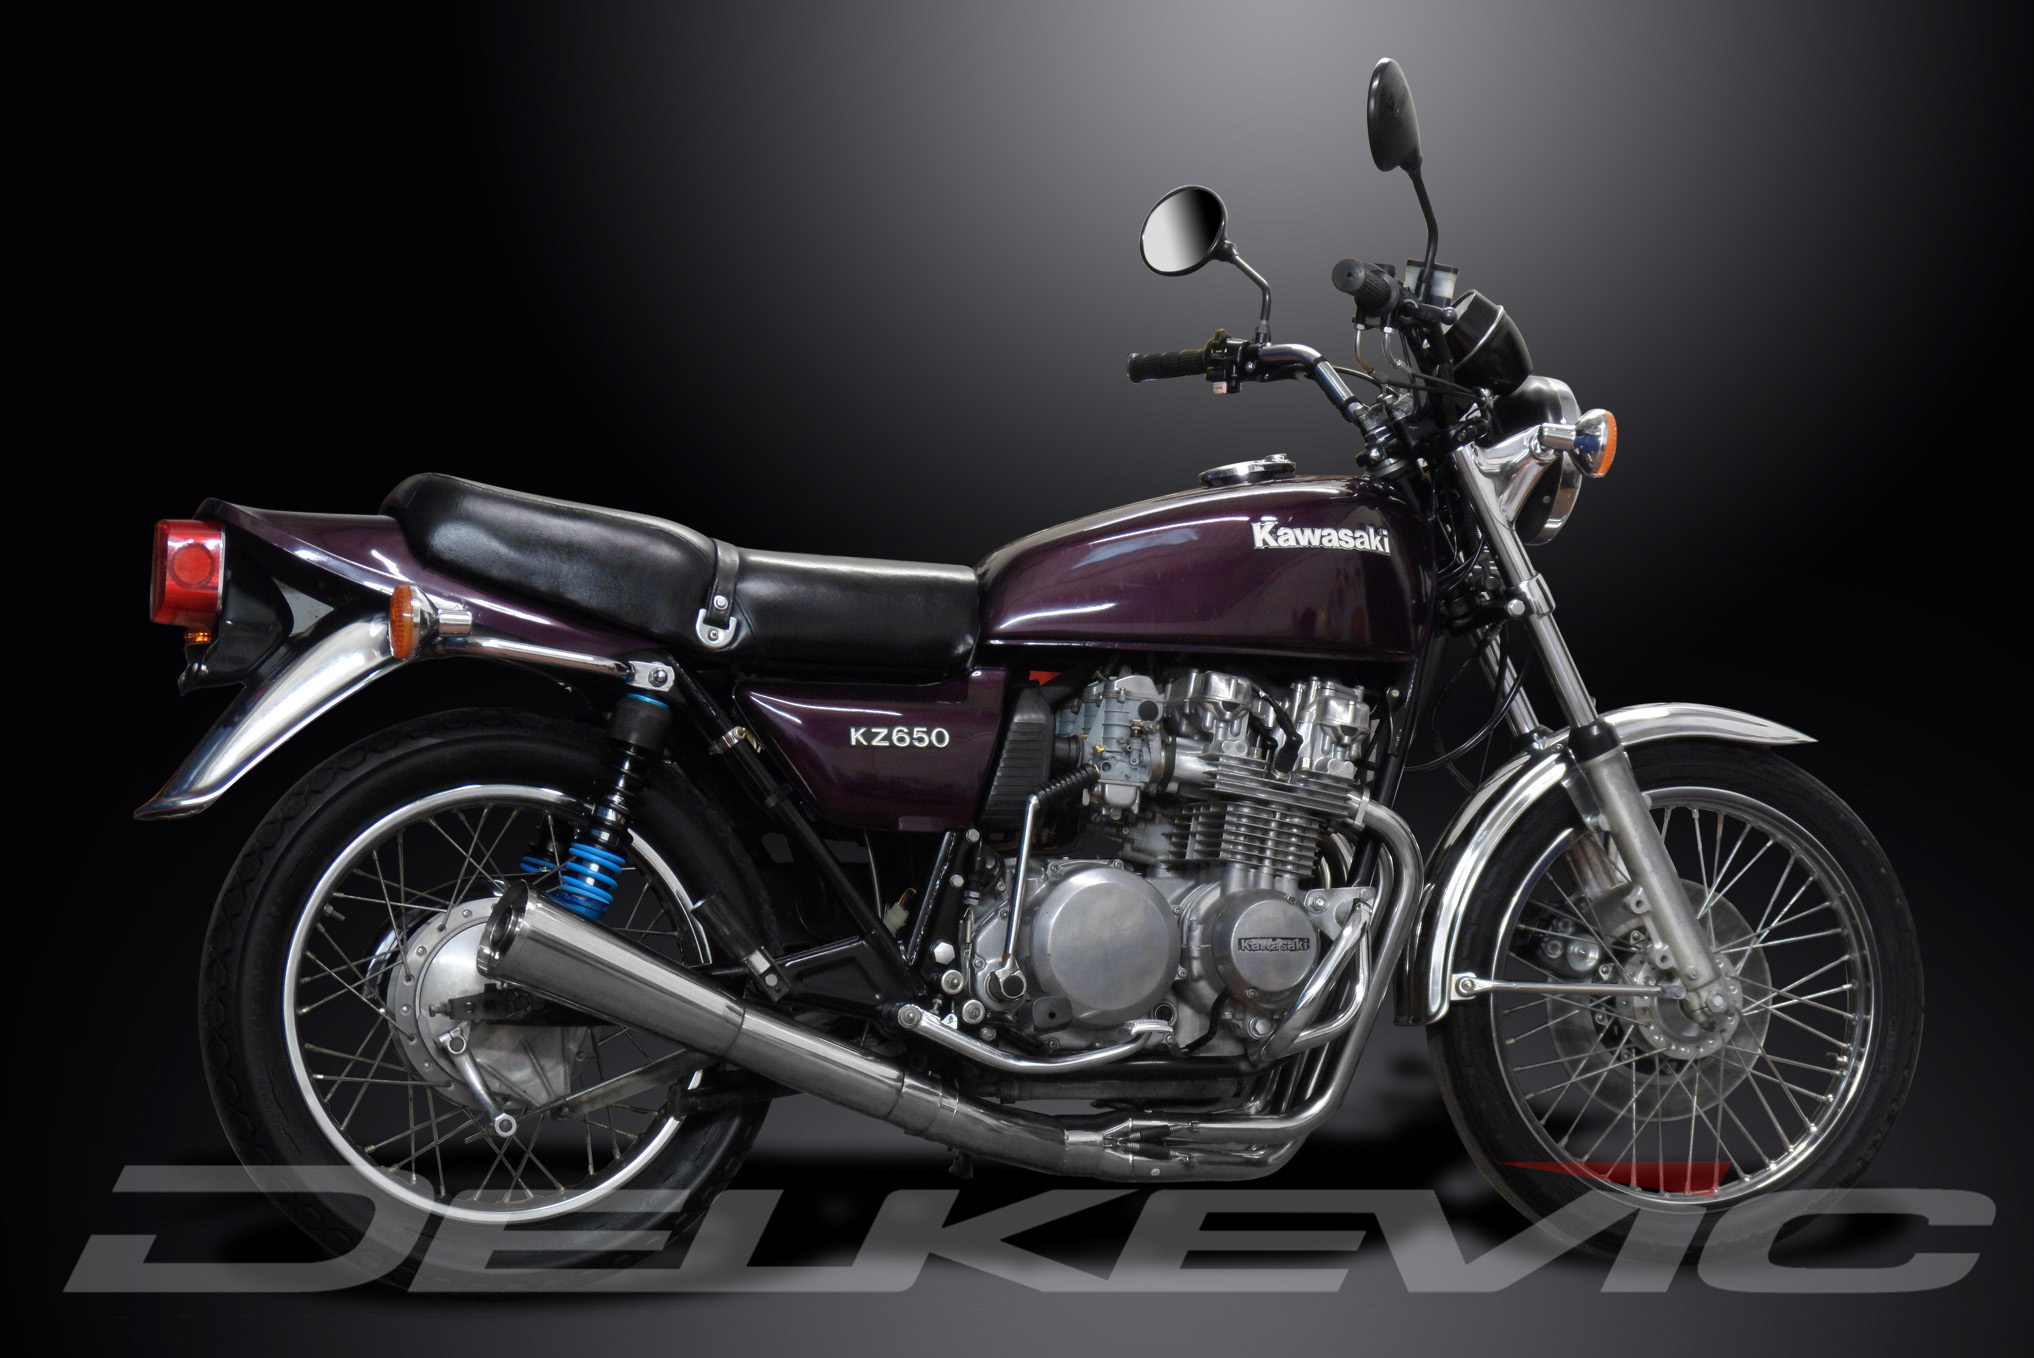 KZ750 All Submodels